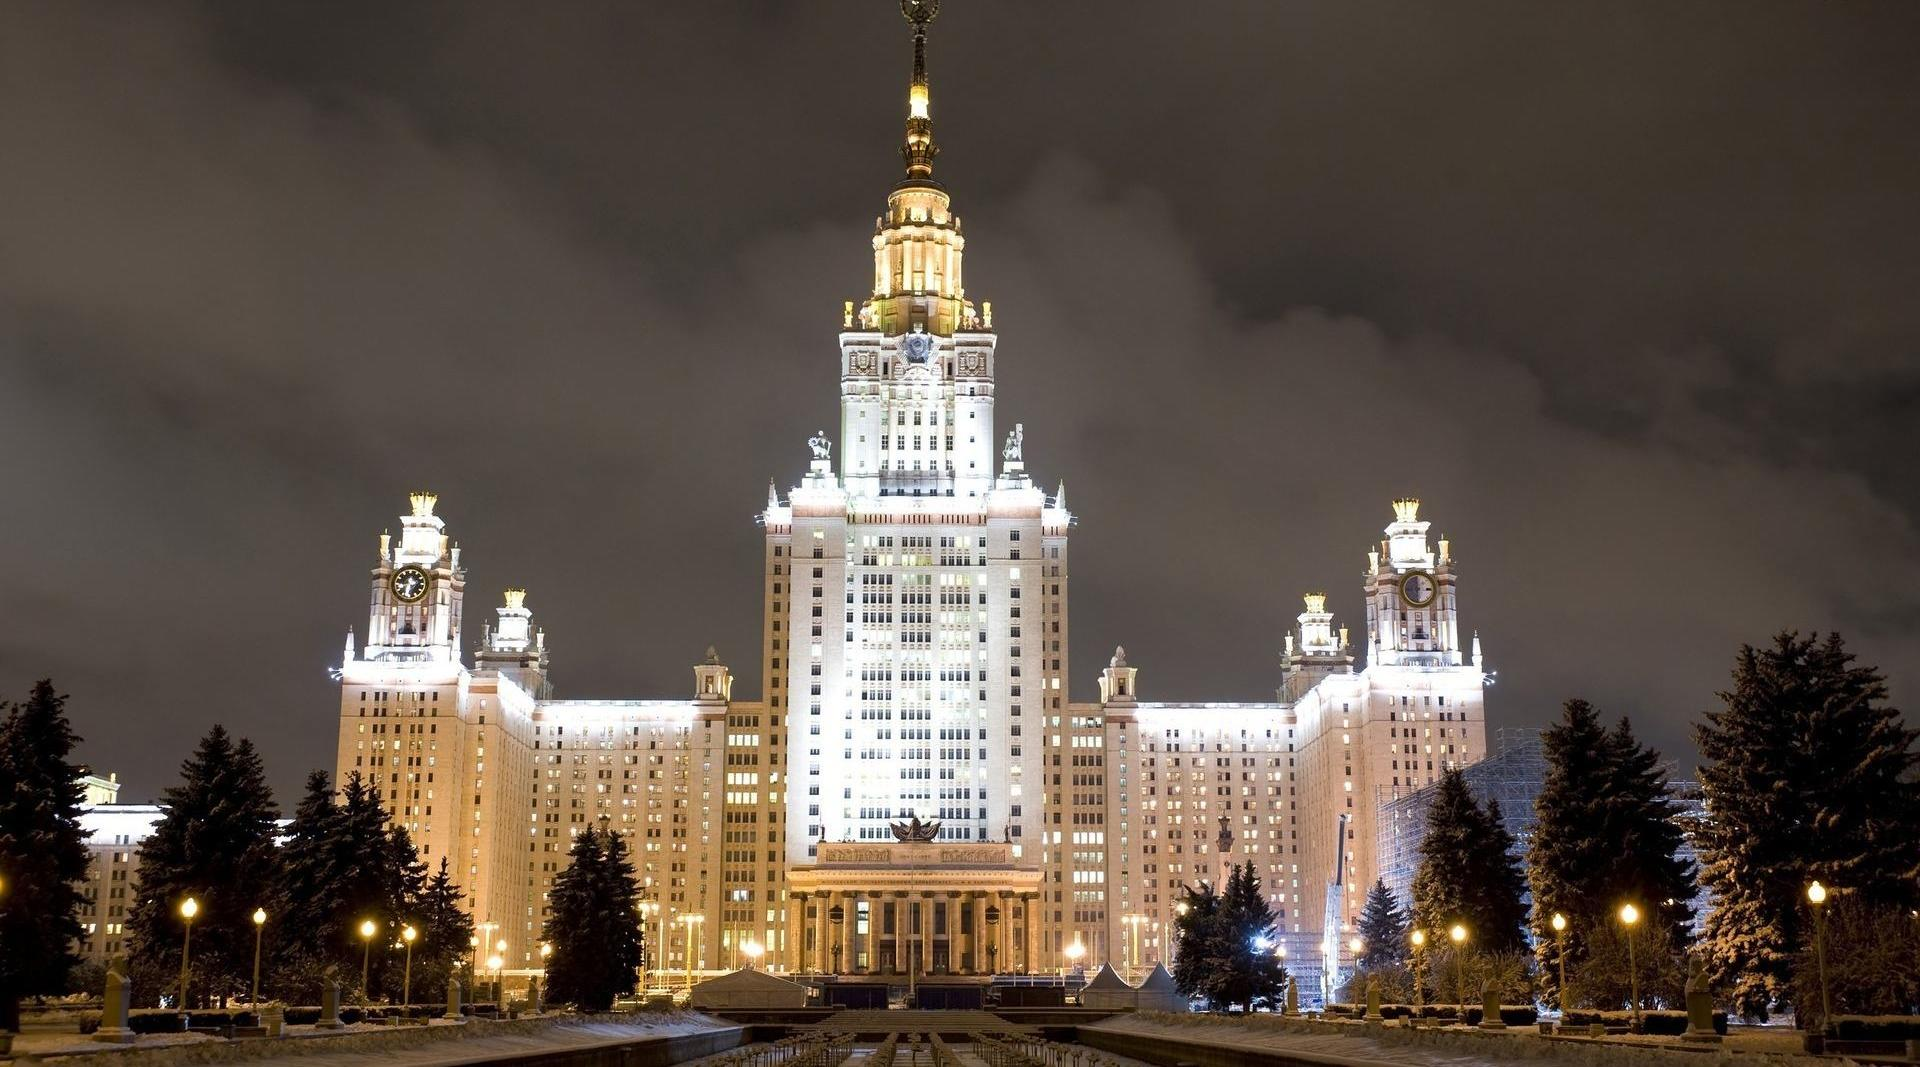 moscow-university-hd-wallpaper-574856